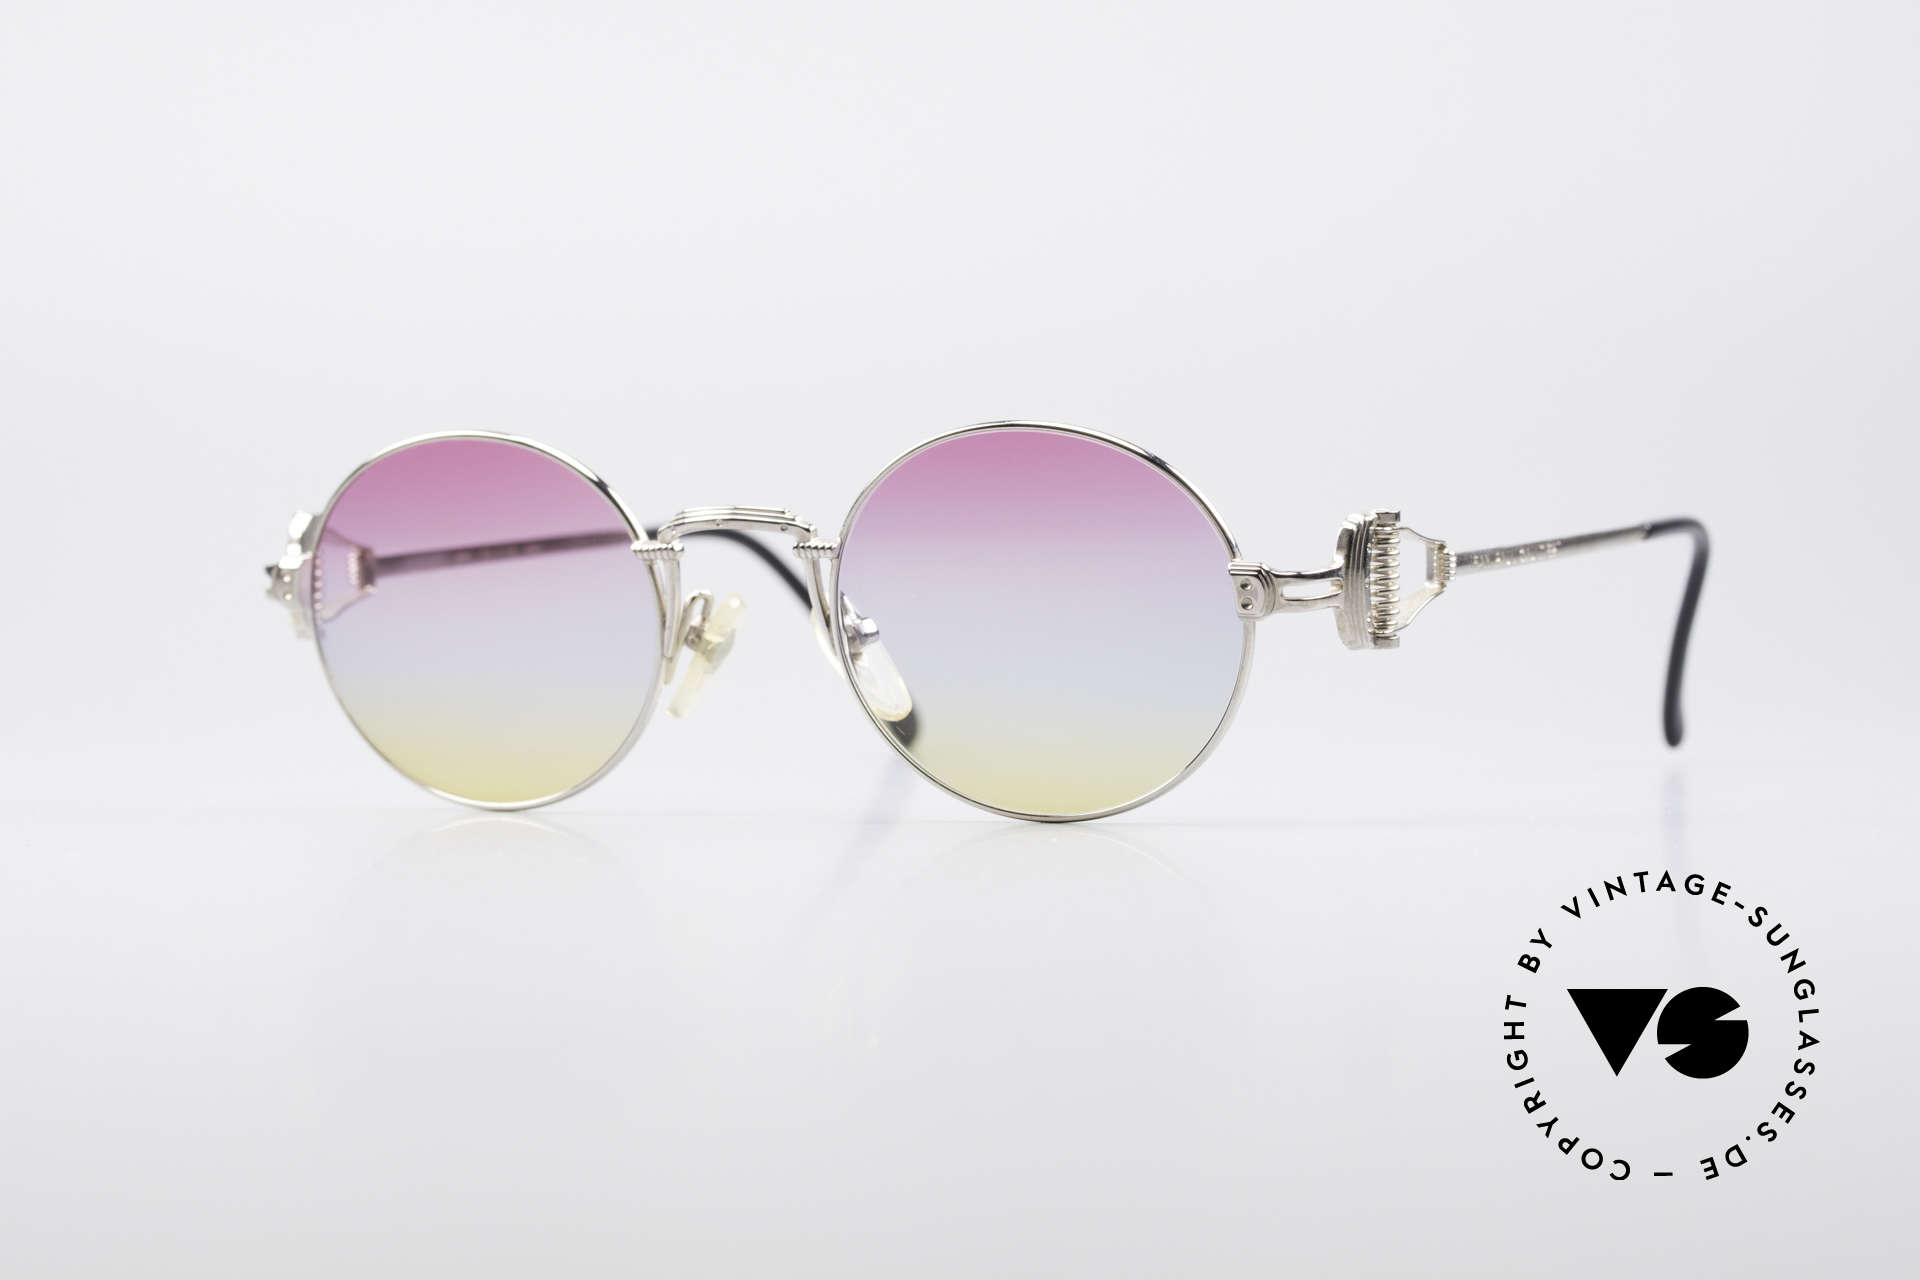 Jean Paul Gaultier 55-5106 Designer Vintage Shades, precious Jean Paul GAULTIER sunglasses from app. 1994, Made for Men and Women